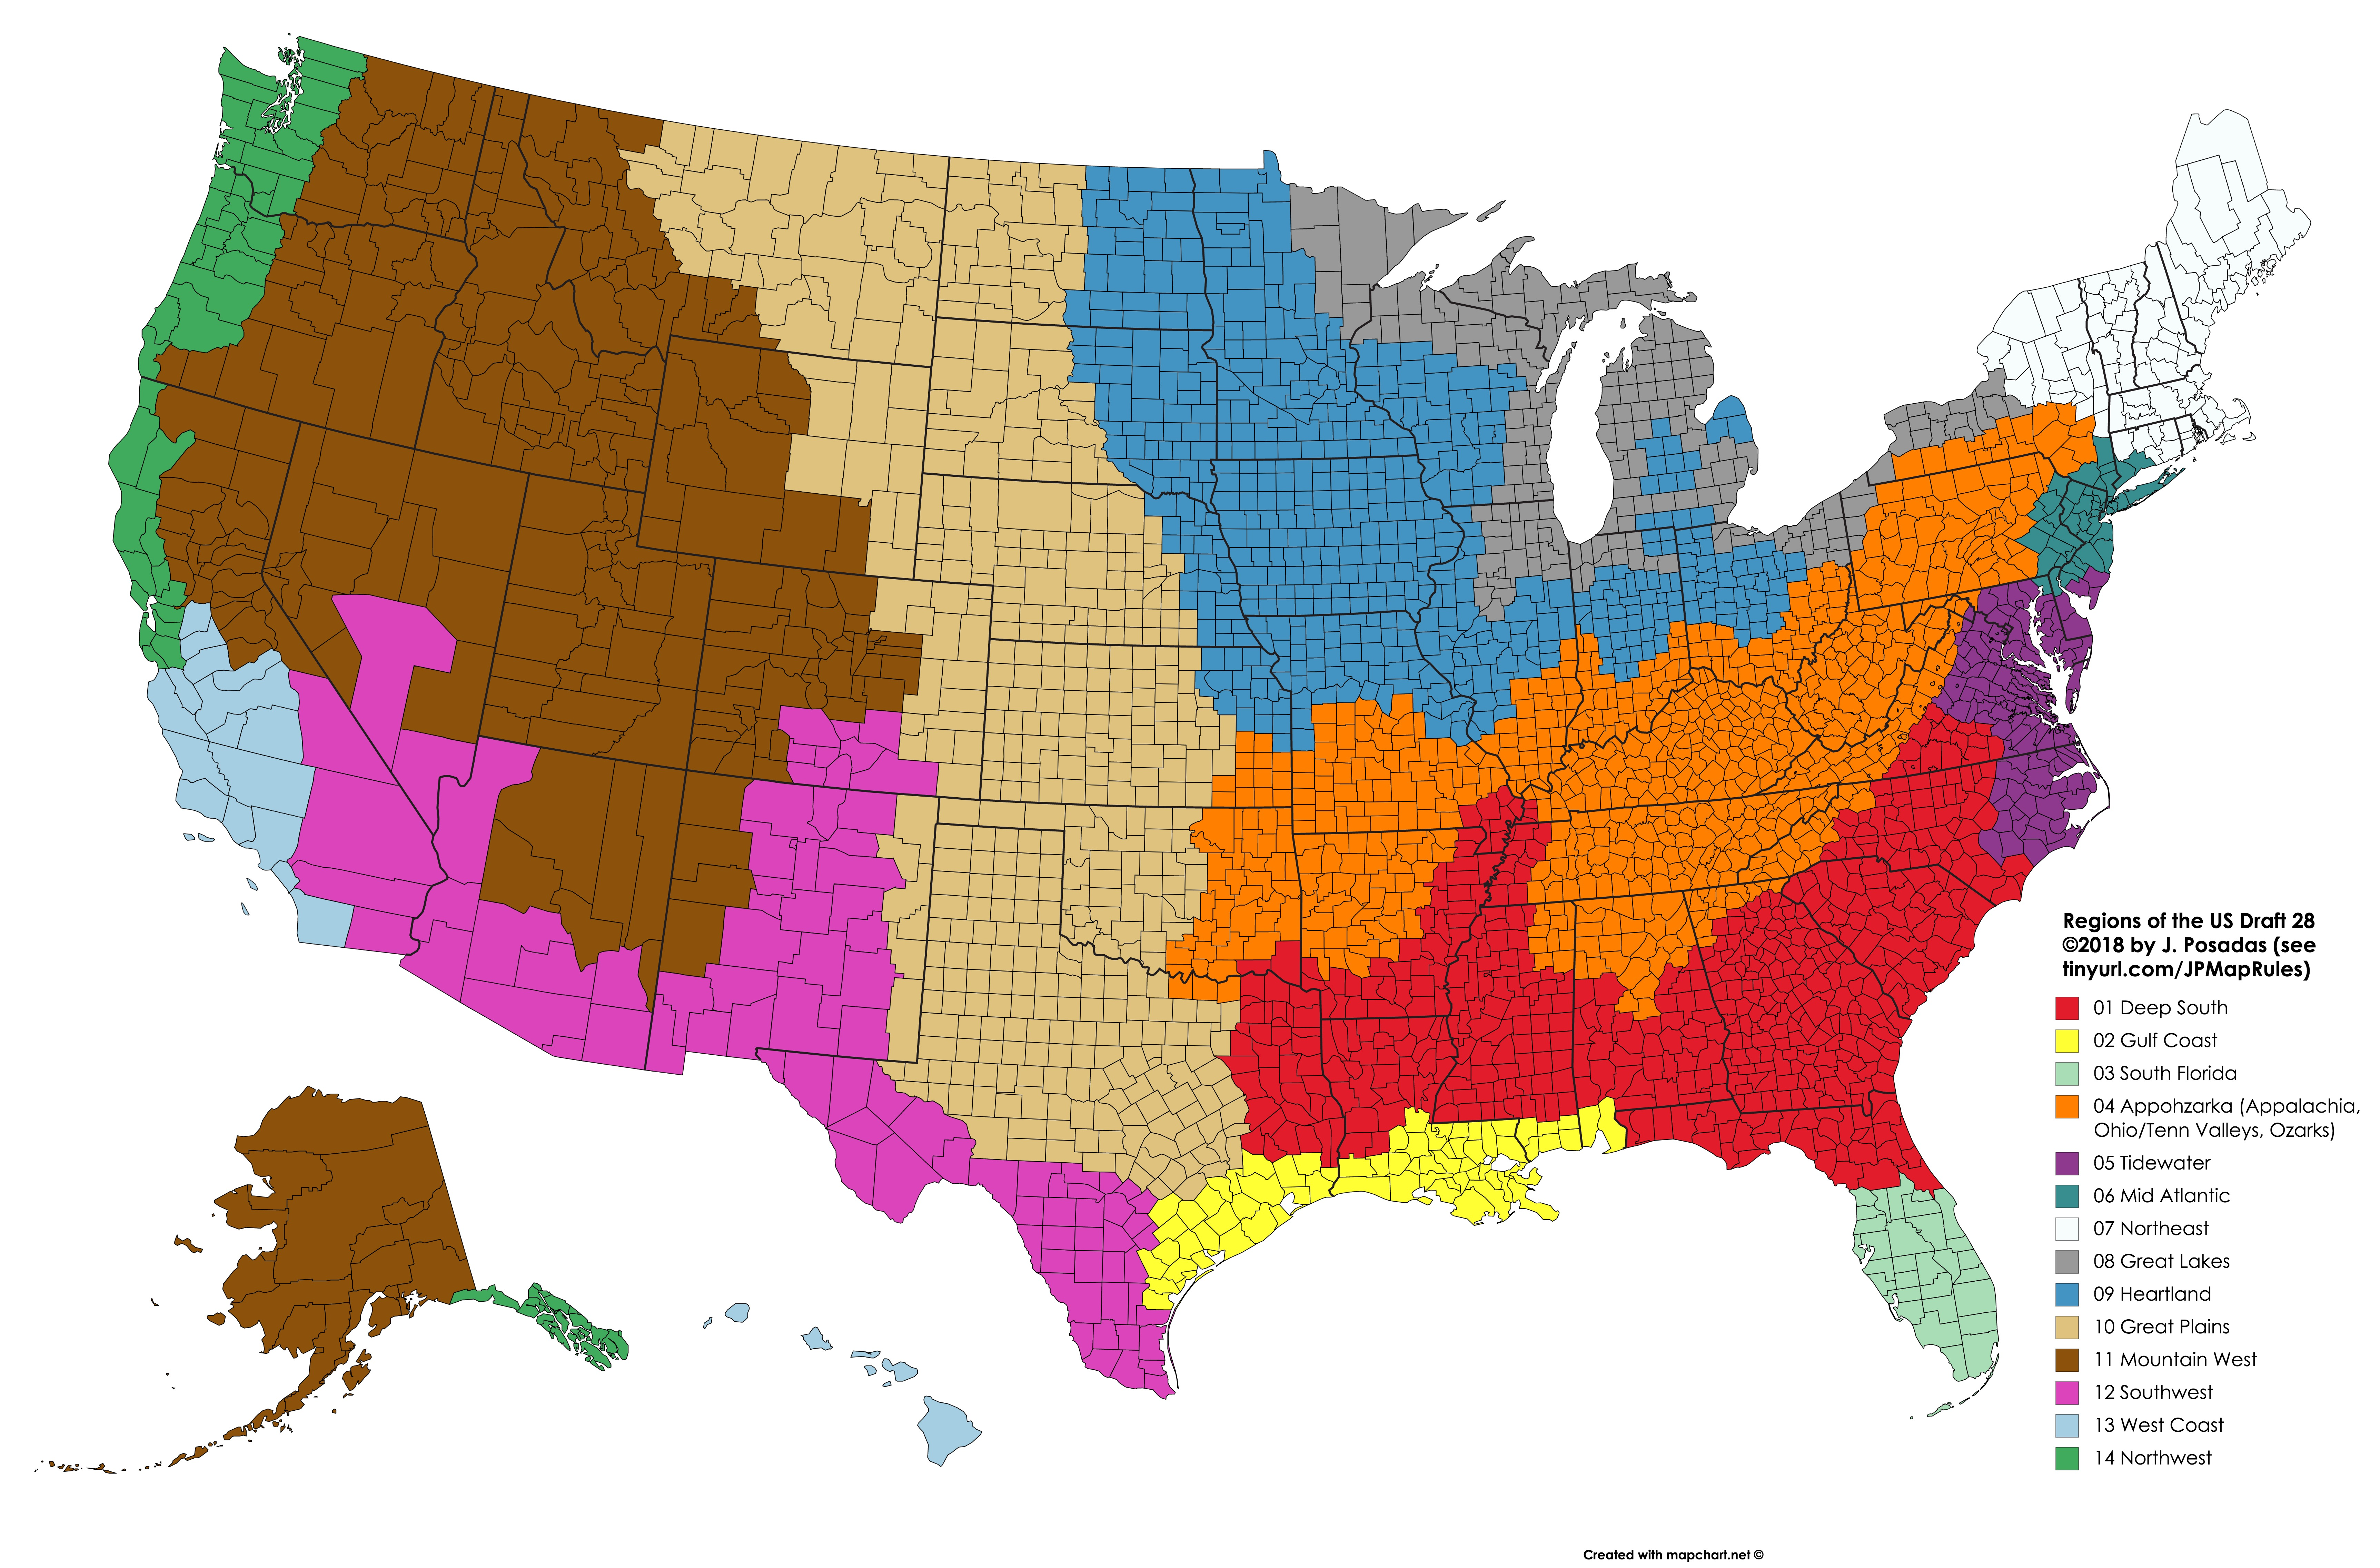 I Made A Map Of The Regions Of The U S